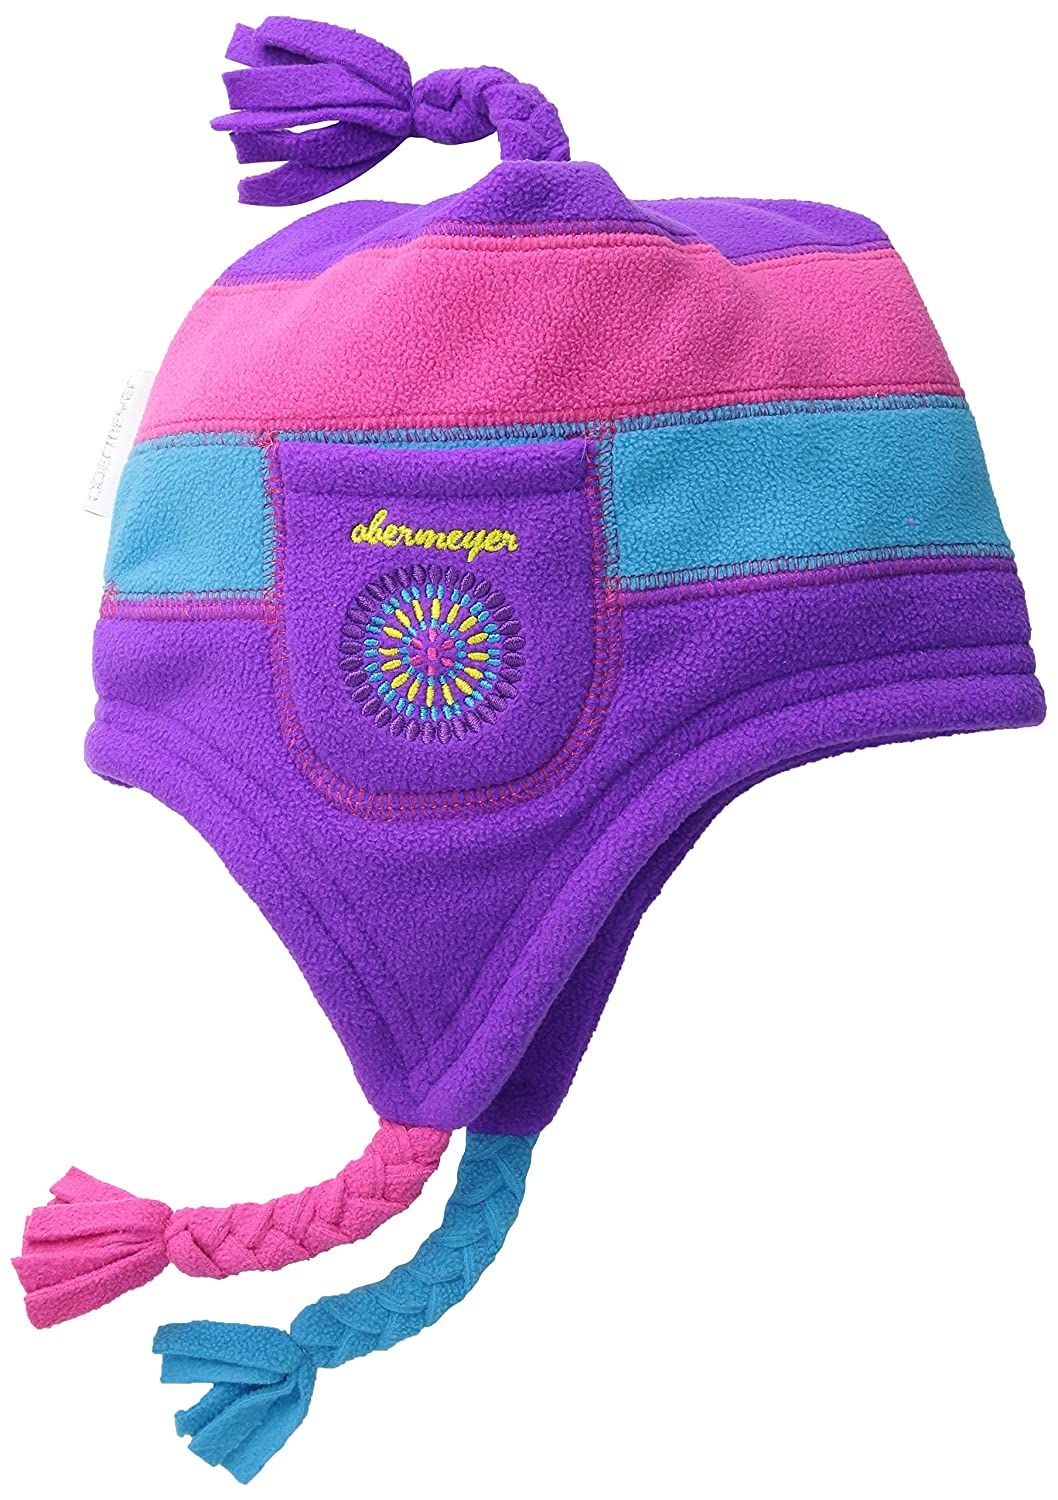 6ef627f6b30 Obermeyer Girls Jiminy Fleece Hat Sport Obermeyer 57014  1541006118 ...